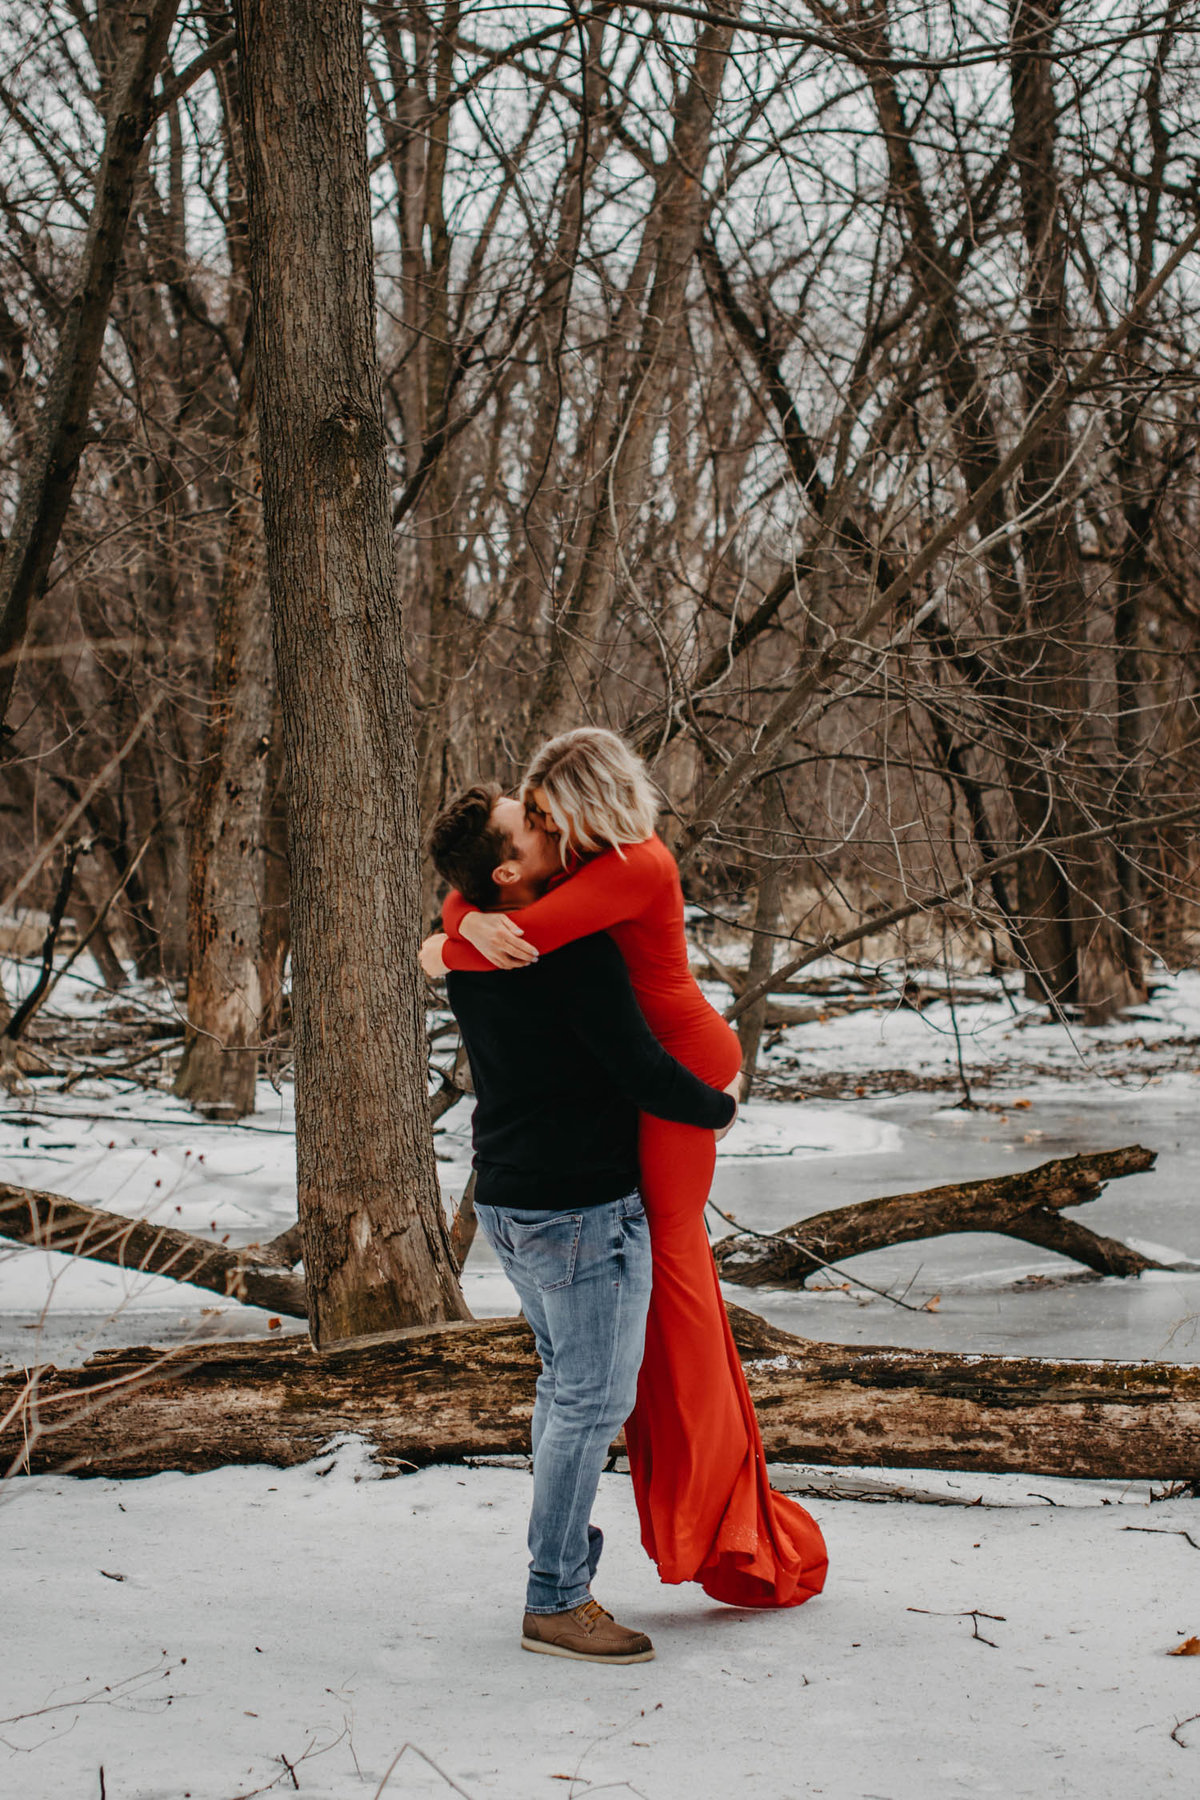 fullersburg-woods-winter-shoot-hinsdale-il-couple-engagement-chicago-91